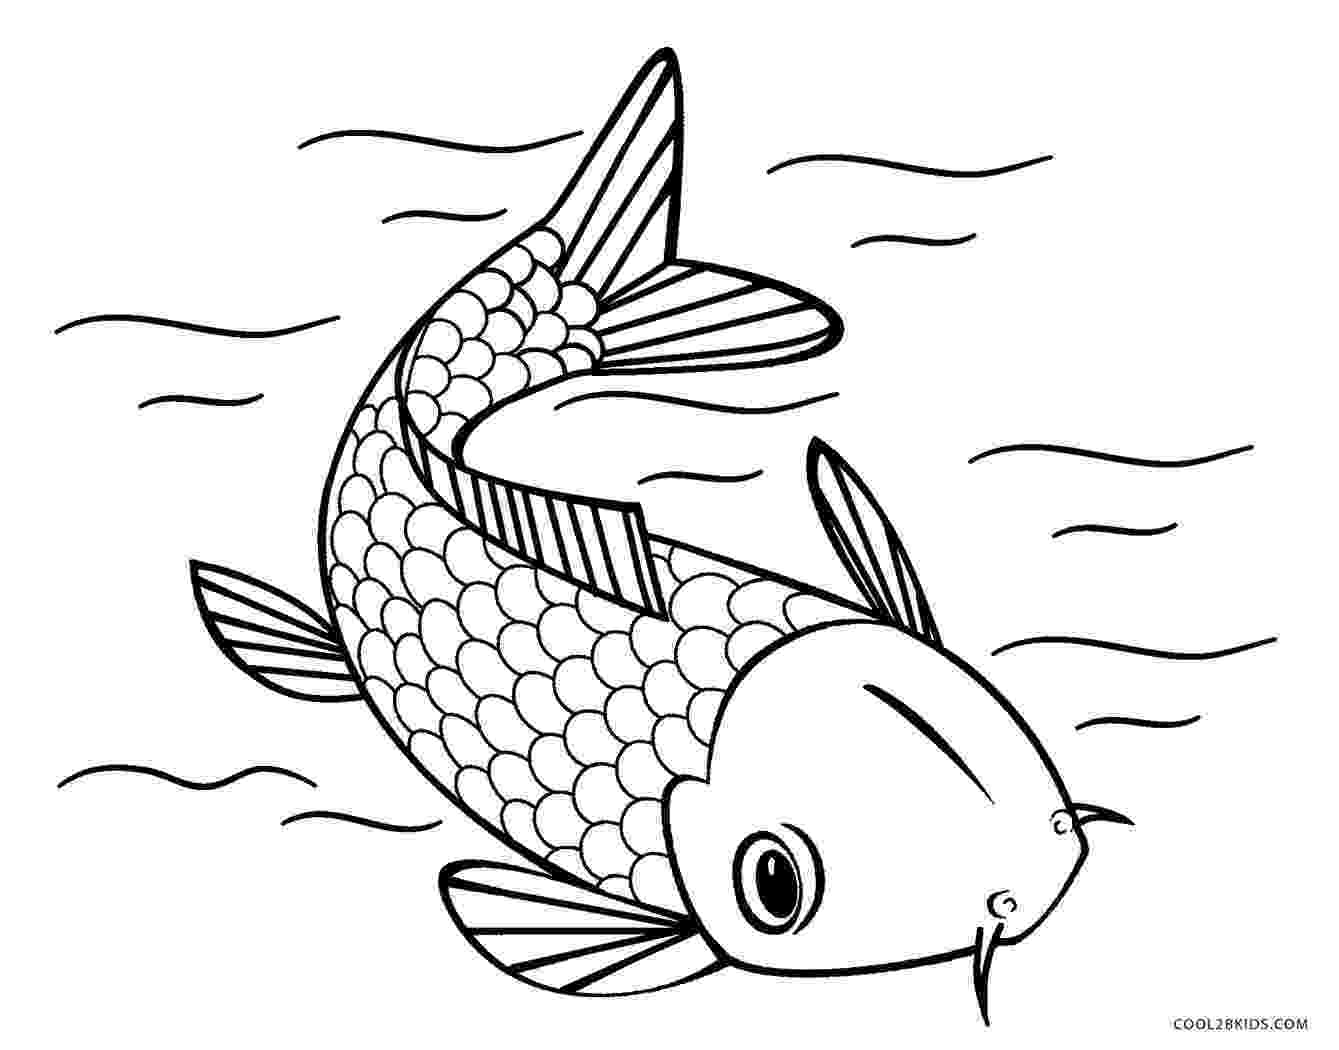 fish colouring images quivedilu wiki printable pictures of fish colouring images fish